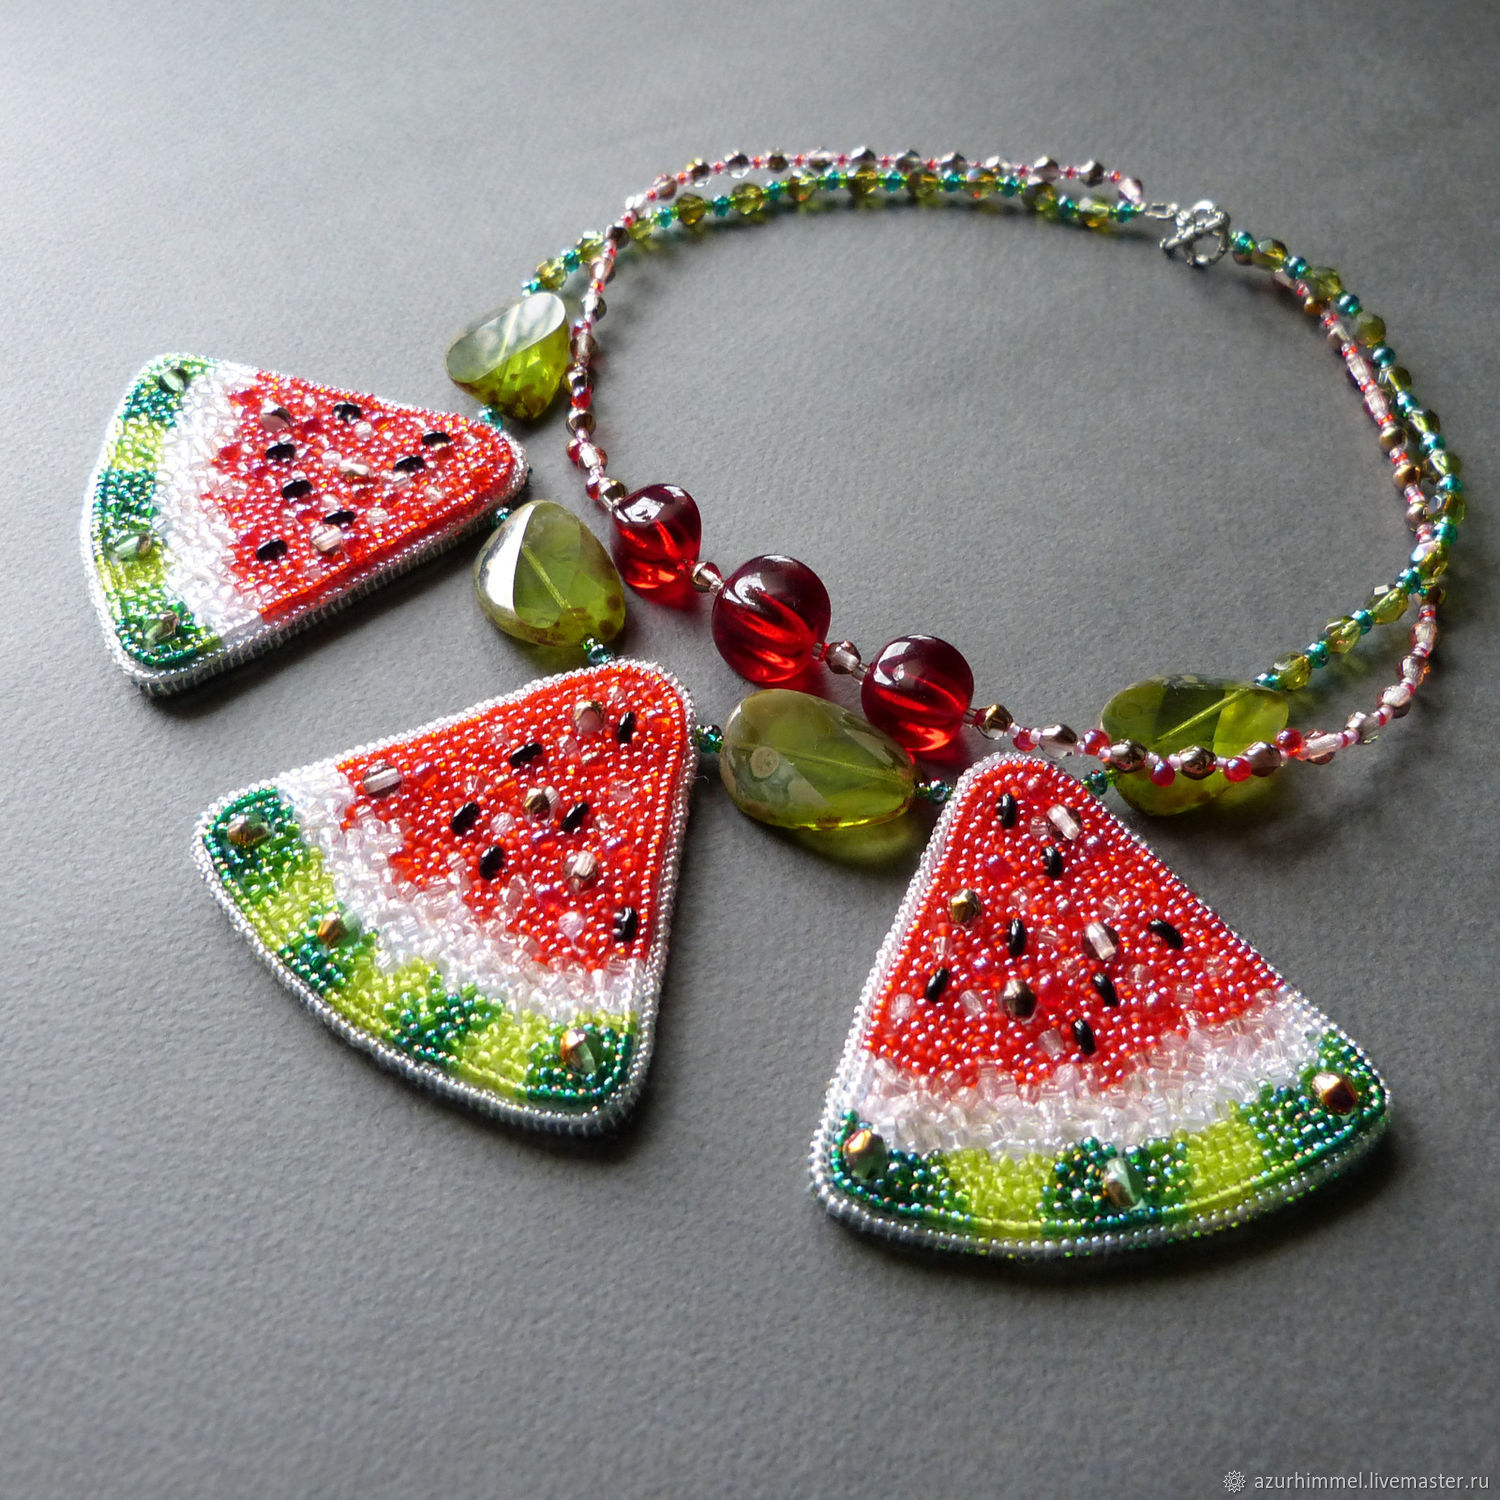 Necklace of beads and beads 'Beads-watermelons', Necklace, Moscow,  Фото №1